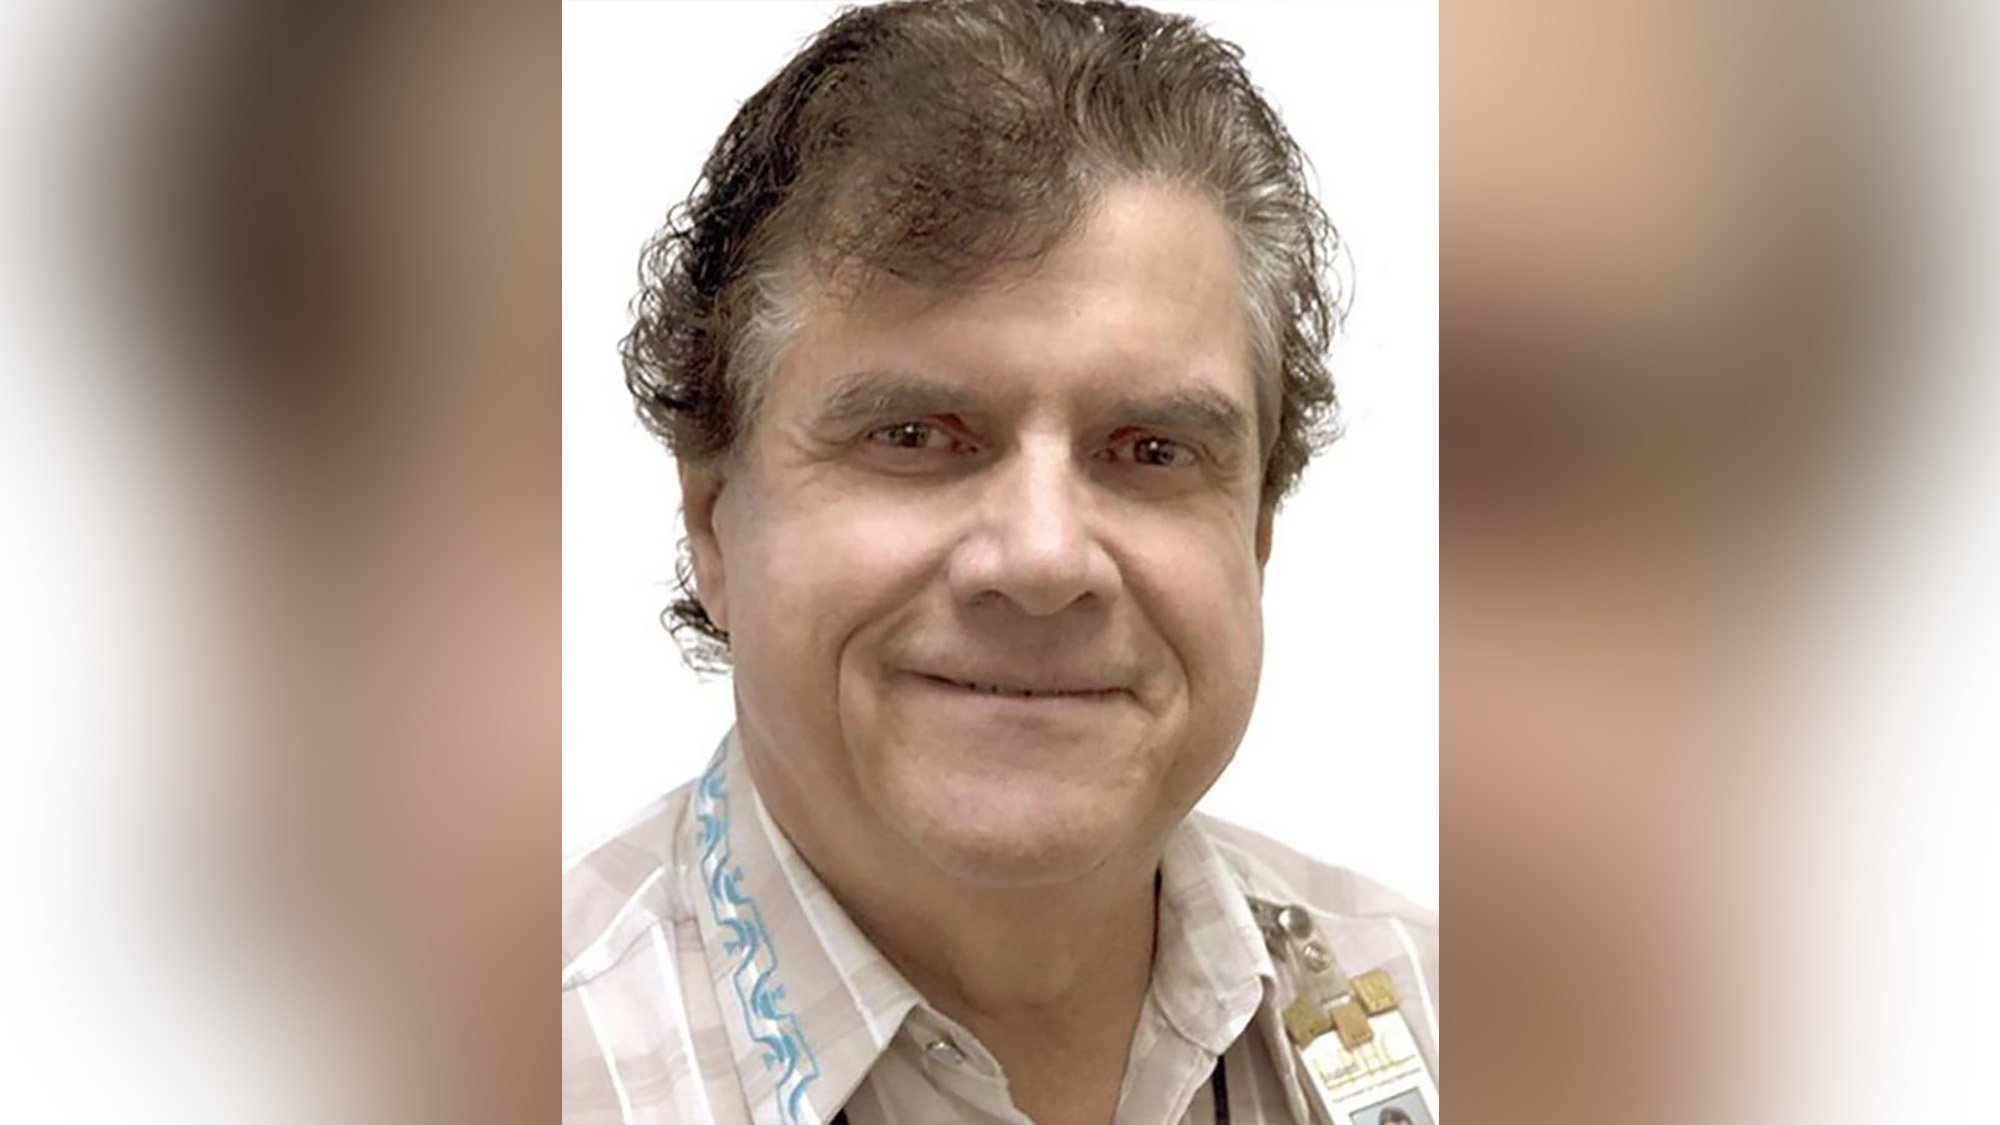 Former USC gynecologist George Tyndall accused of sexual assault of 16 patients